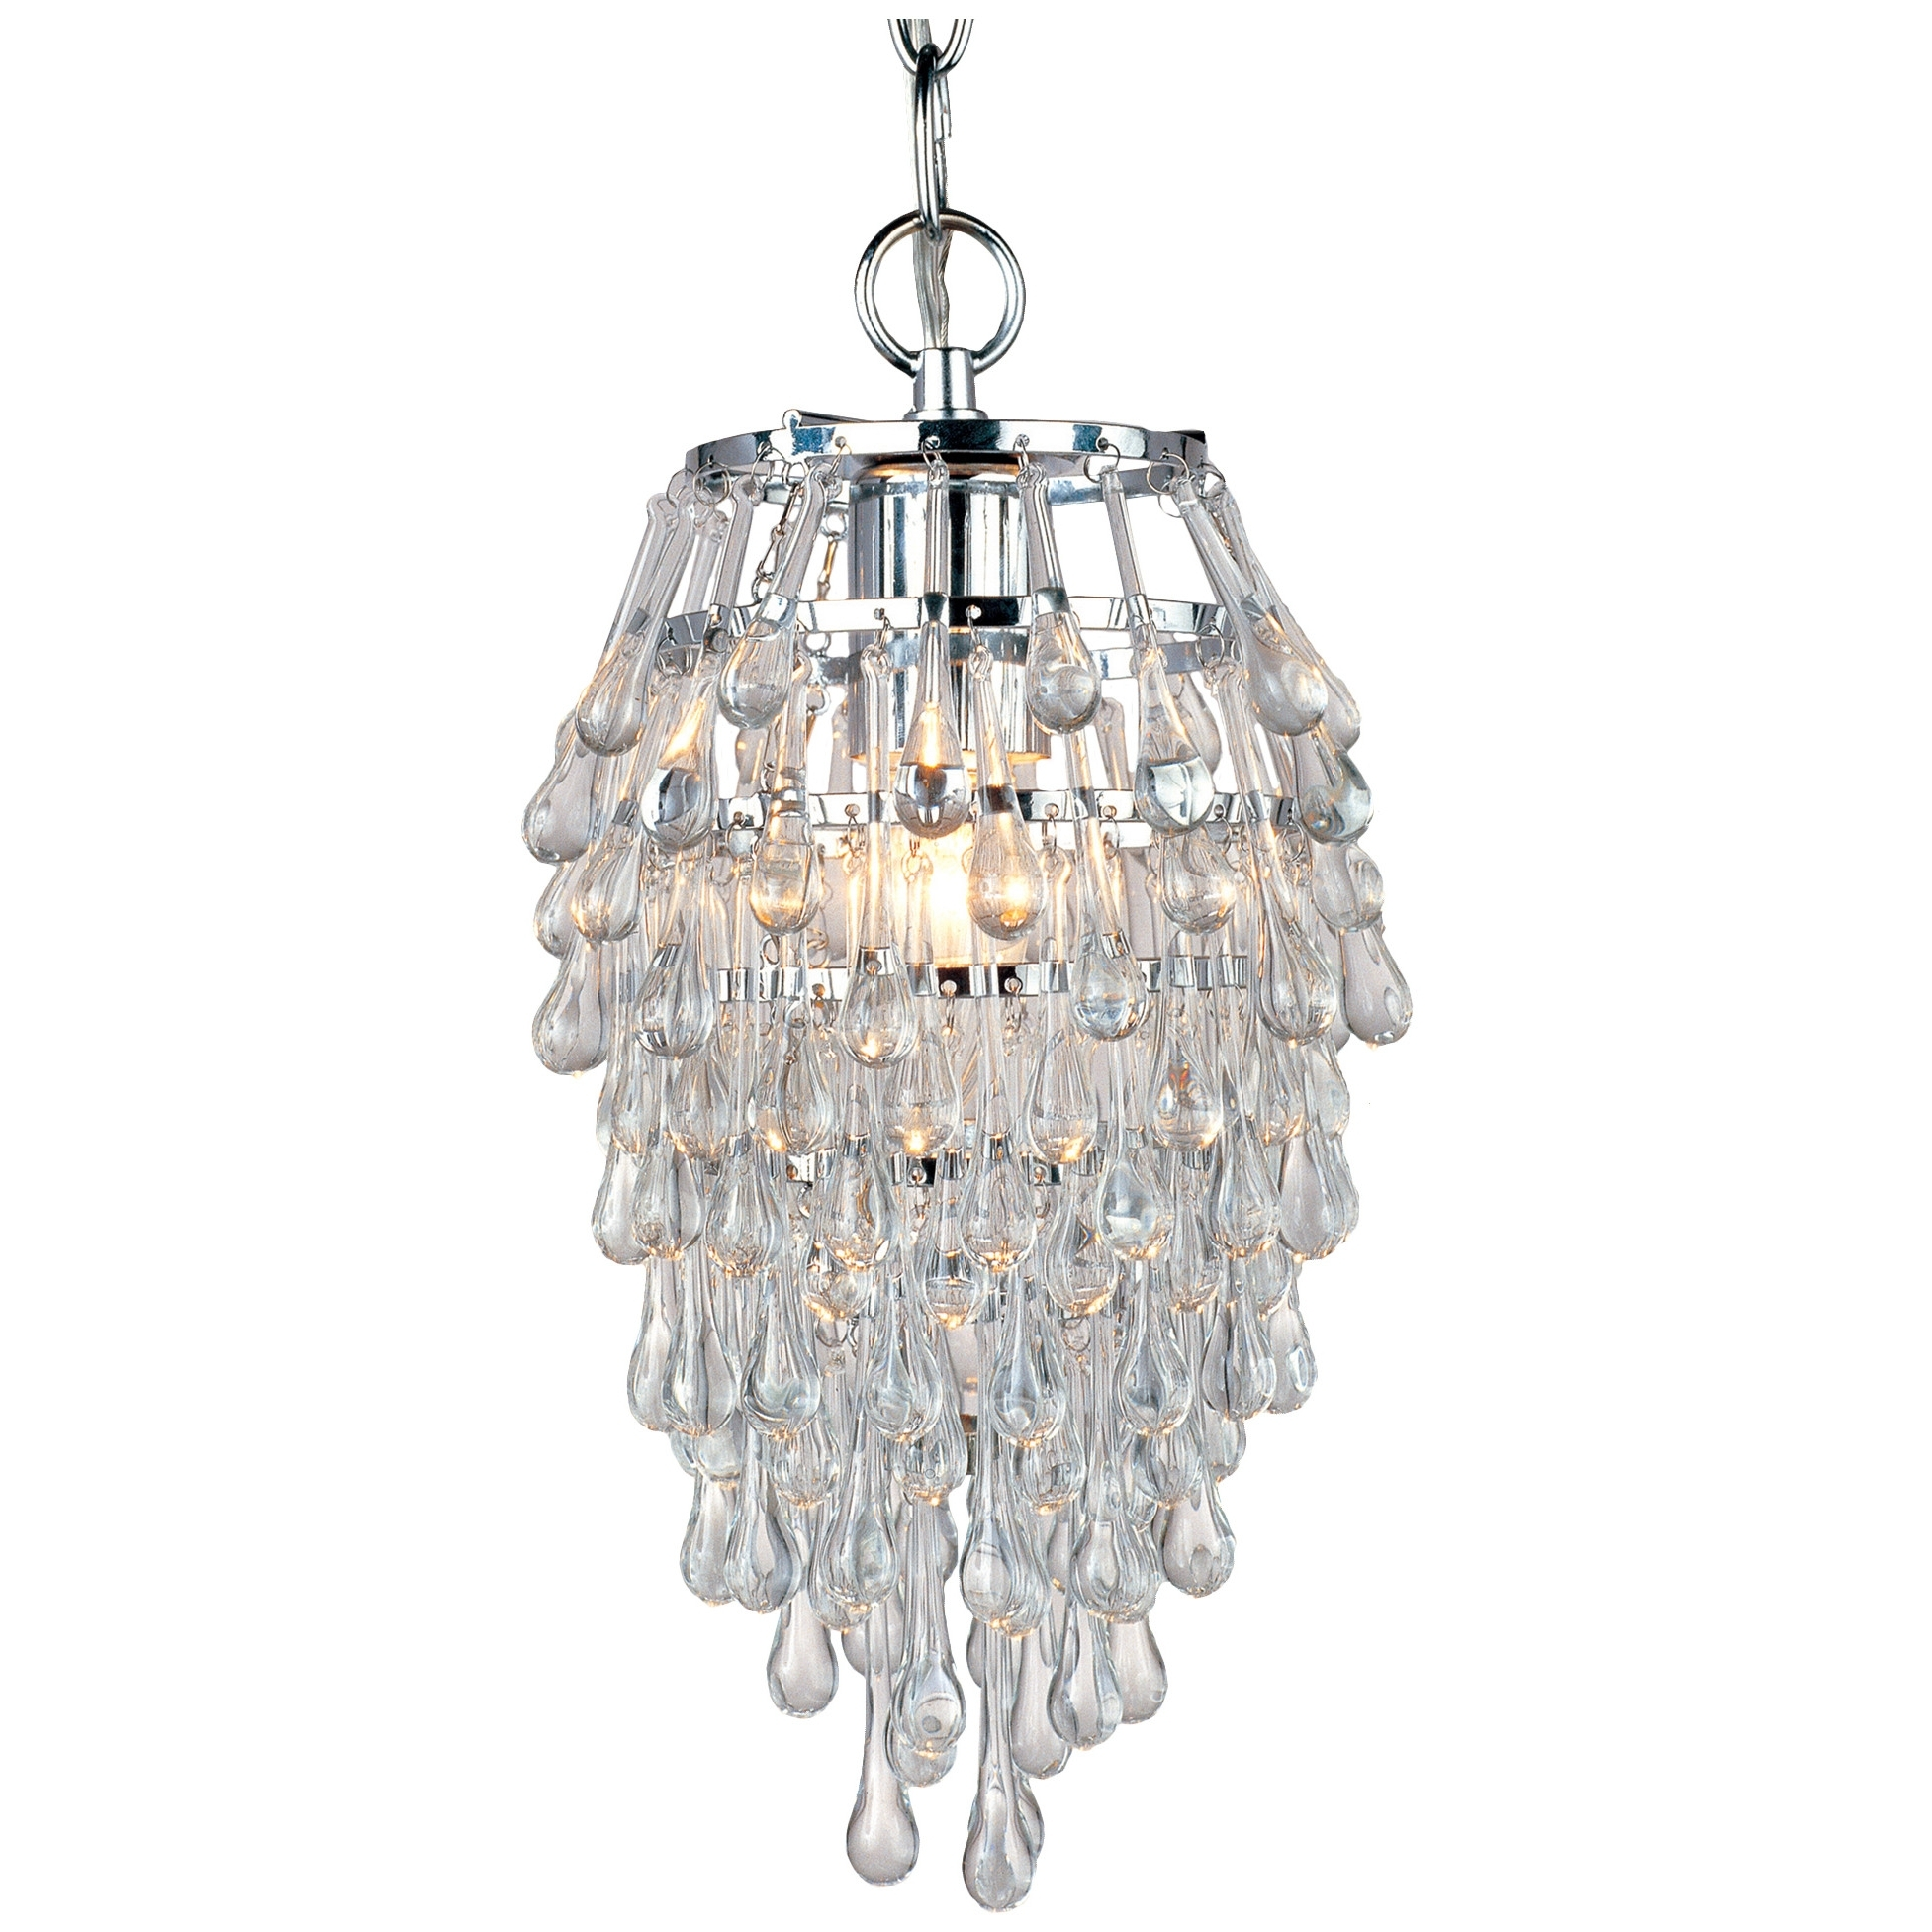 Newest Small Rustic Crystal Chandeliers Throughout Iron Chandelier Tags : Wonderful Small Rustic Chandelier Amazing (View 13 of 20)